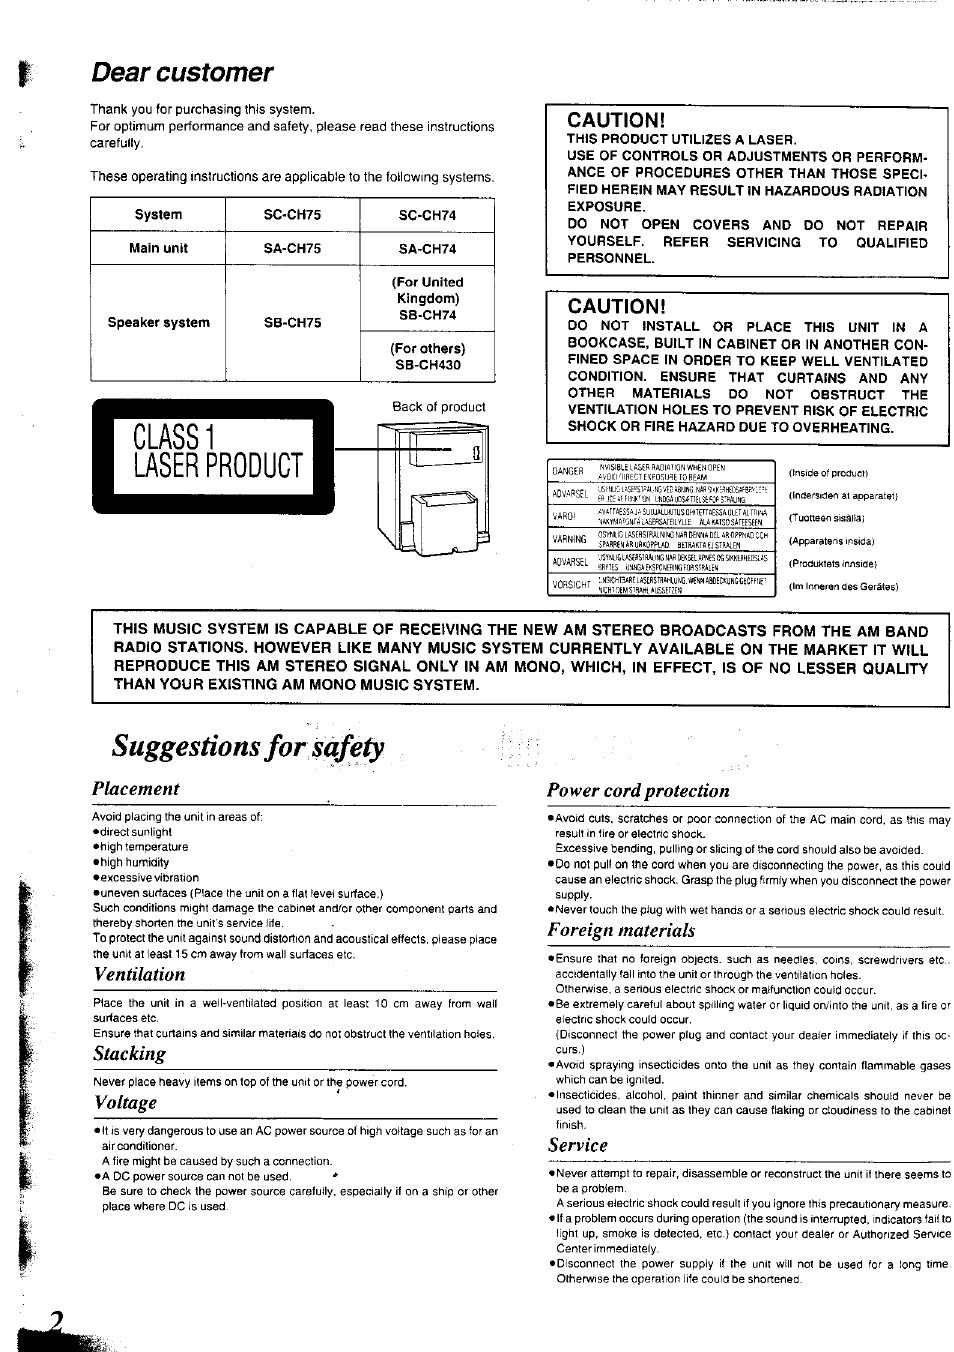 Suggestions For Safety Dear Customer Placement Power Cord Warning Electric Shock Could Occur If Used On Wet Surfaces Protection Panasonic Sc Ch75 User Manual Page 2 40